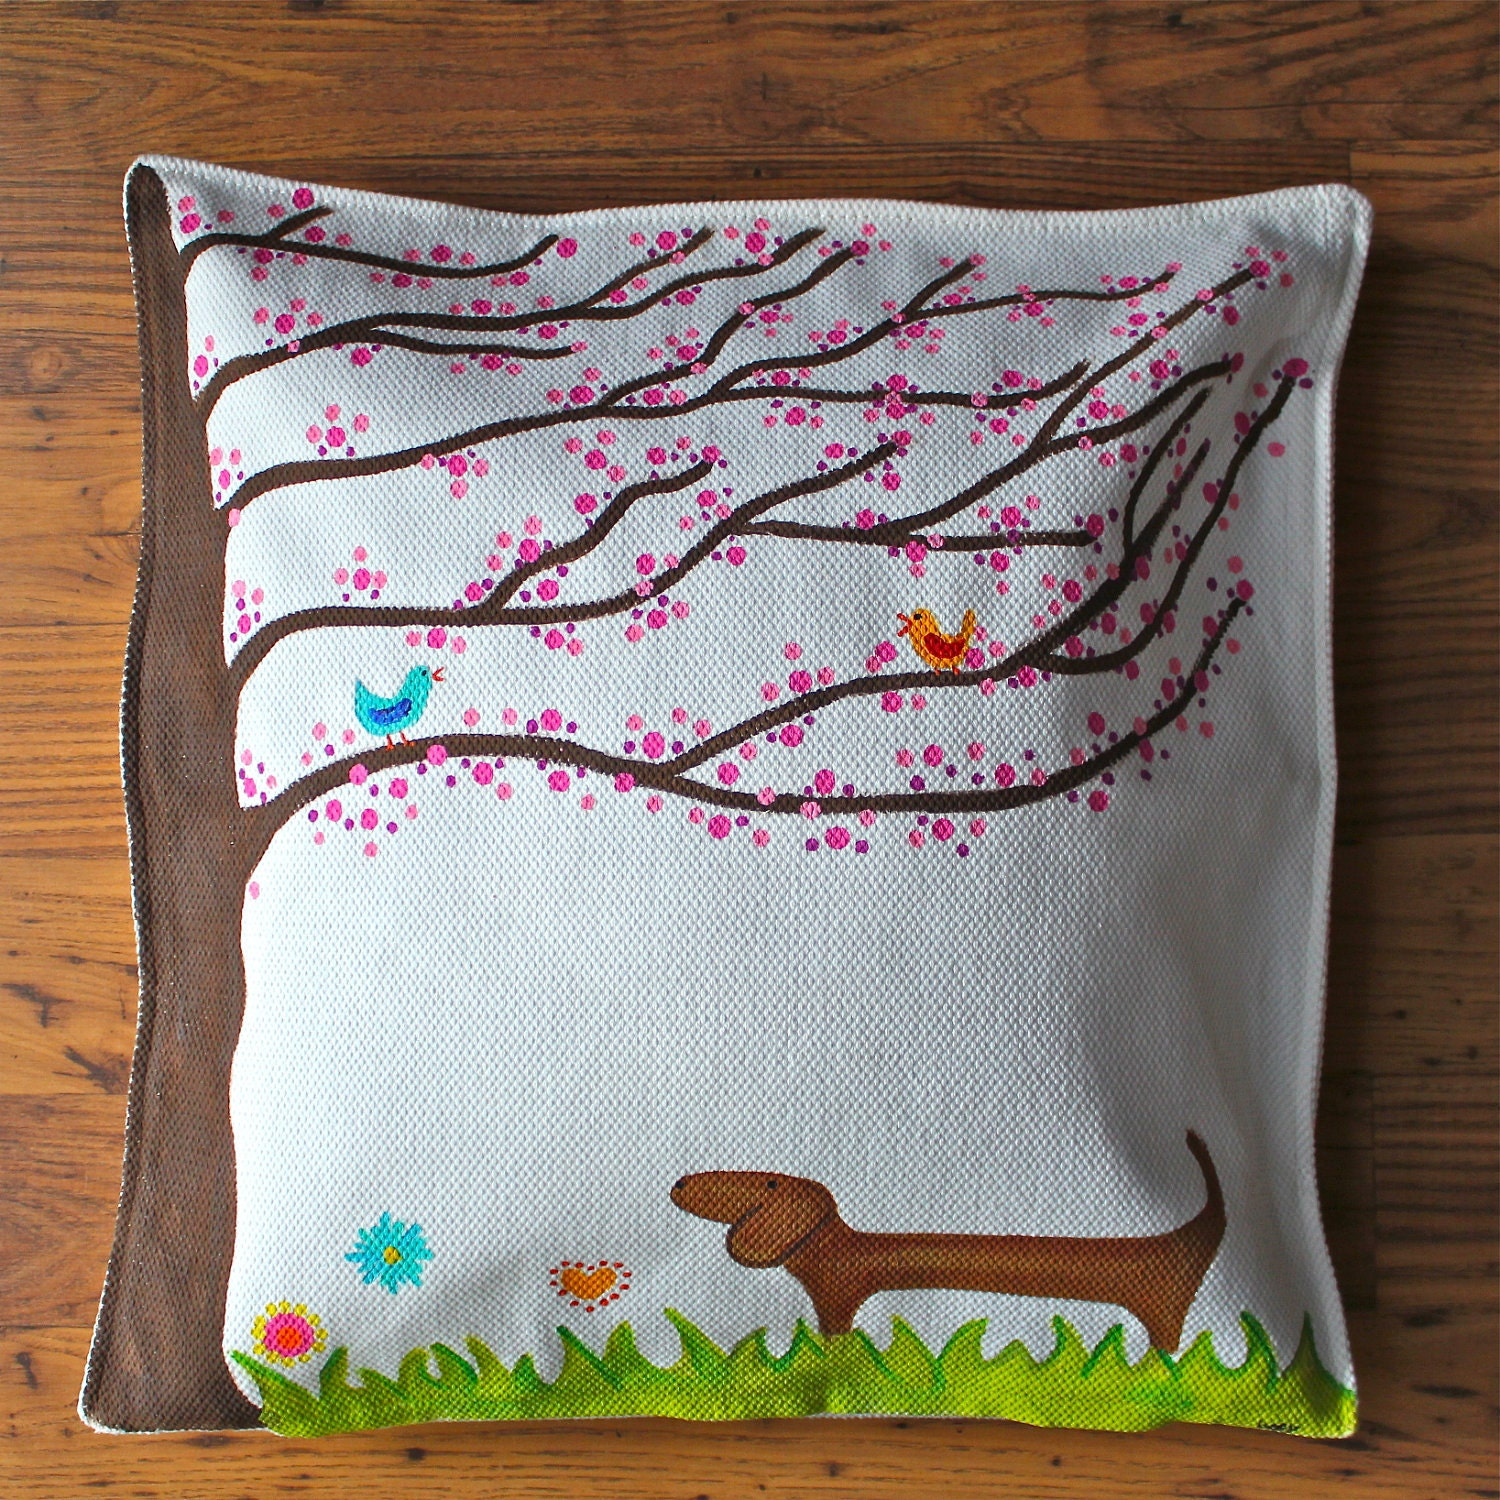 How To Make A Decorative Pillow By Hand : Hand Painted Dachshund Decorative Pillow Cover by MaxMinnieandMe